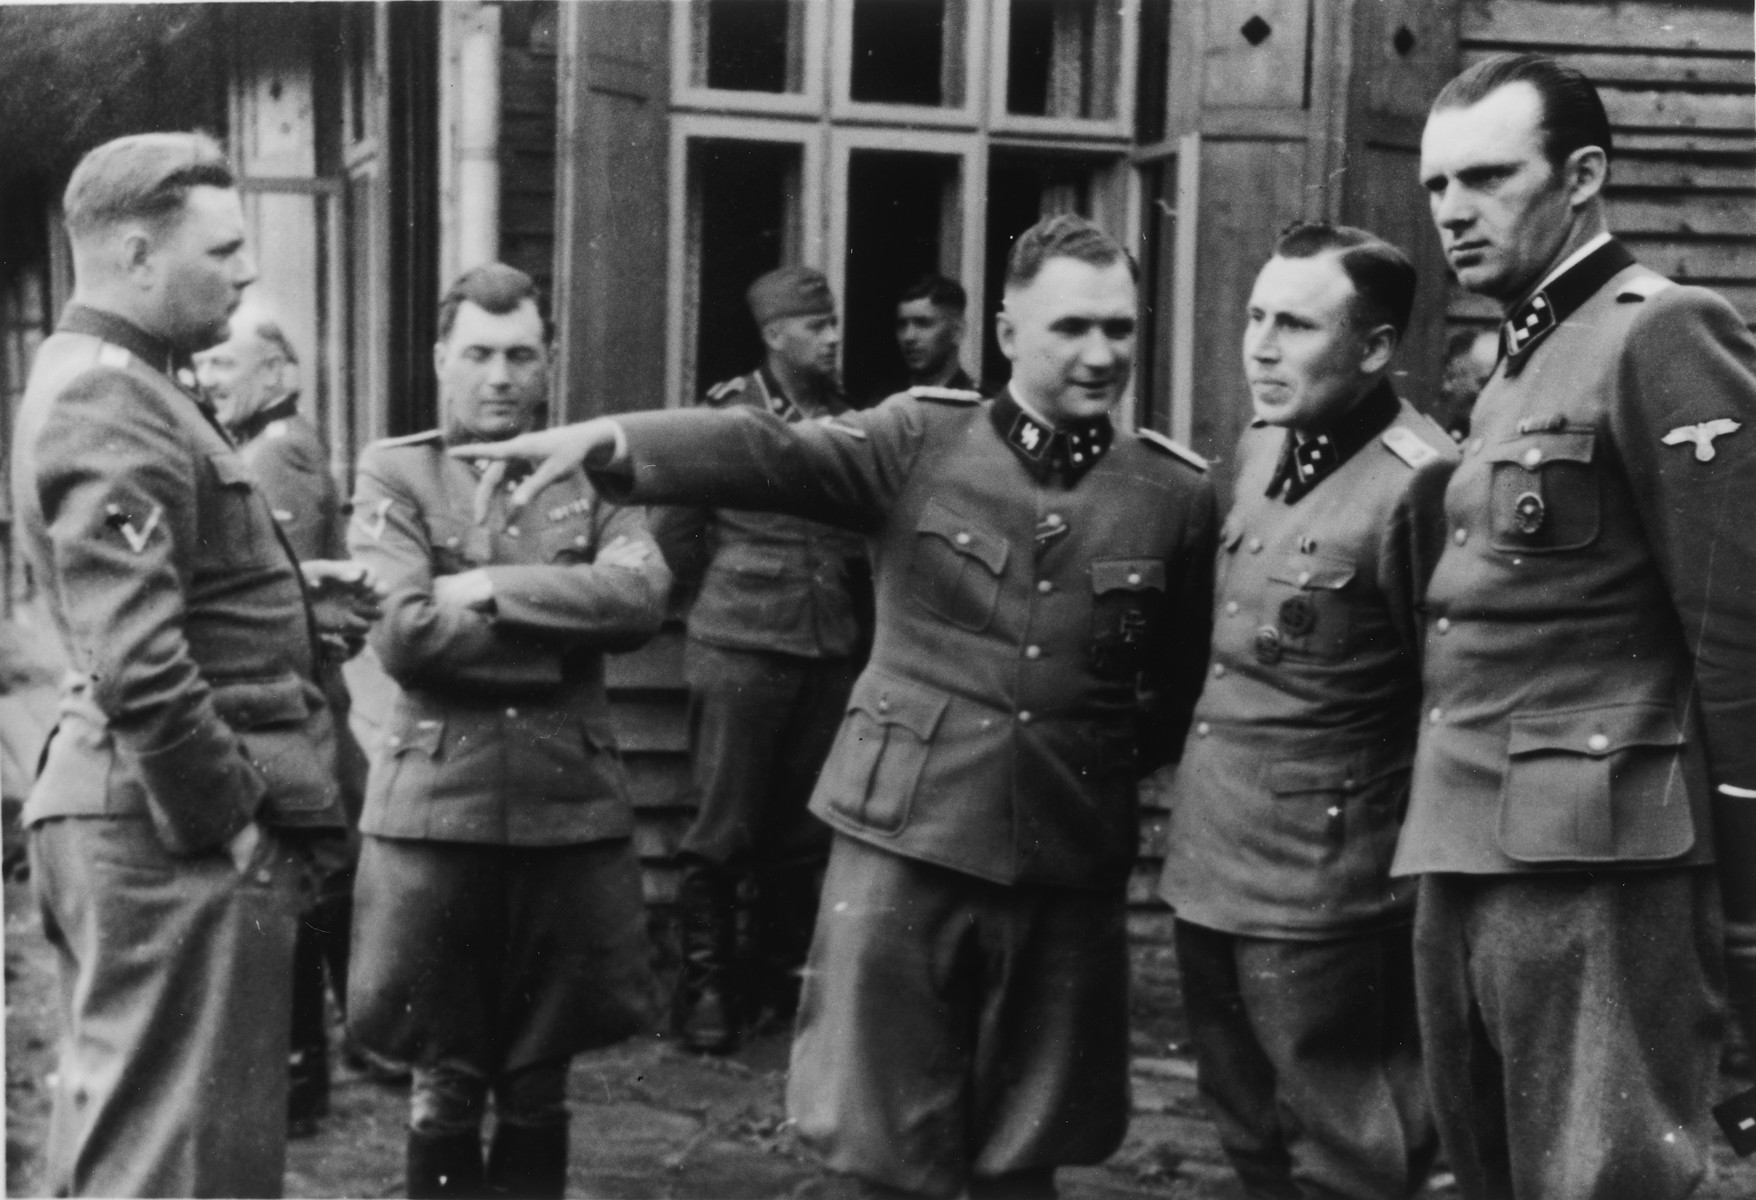 A group of SS officers gather iat Solahuette, the SS retreat outside of Auschwitz.  From left to right are Josef Kramer, Dr. Josef Mengele, Richard Baer, Karl Hoecker and Walter Schmidetzki.   [Based on the officers visiting Solahutte, we surmise that the photographs were taken to honor Rudolf Hoess who completed his tenure as garrison senior on July 29.]